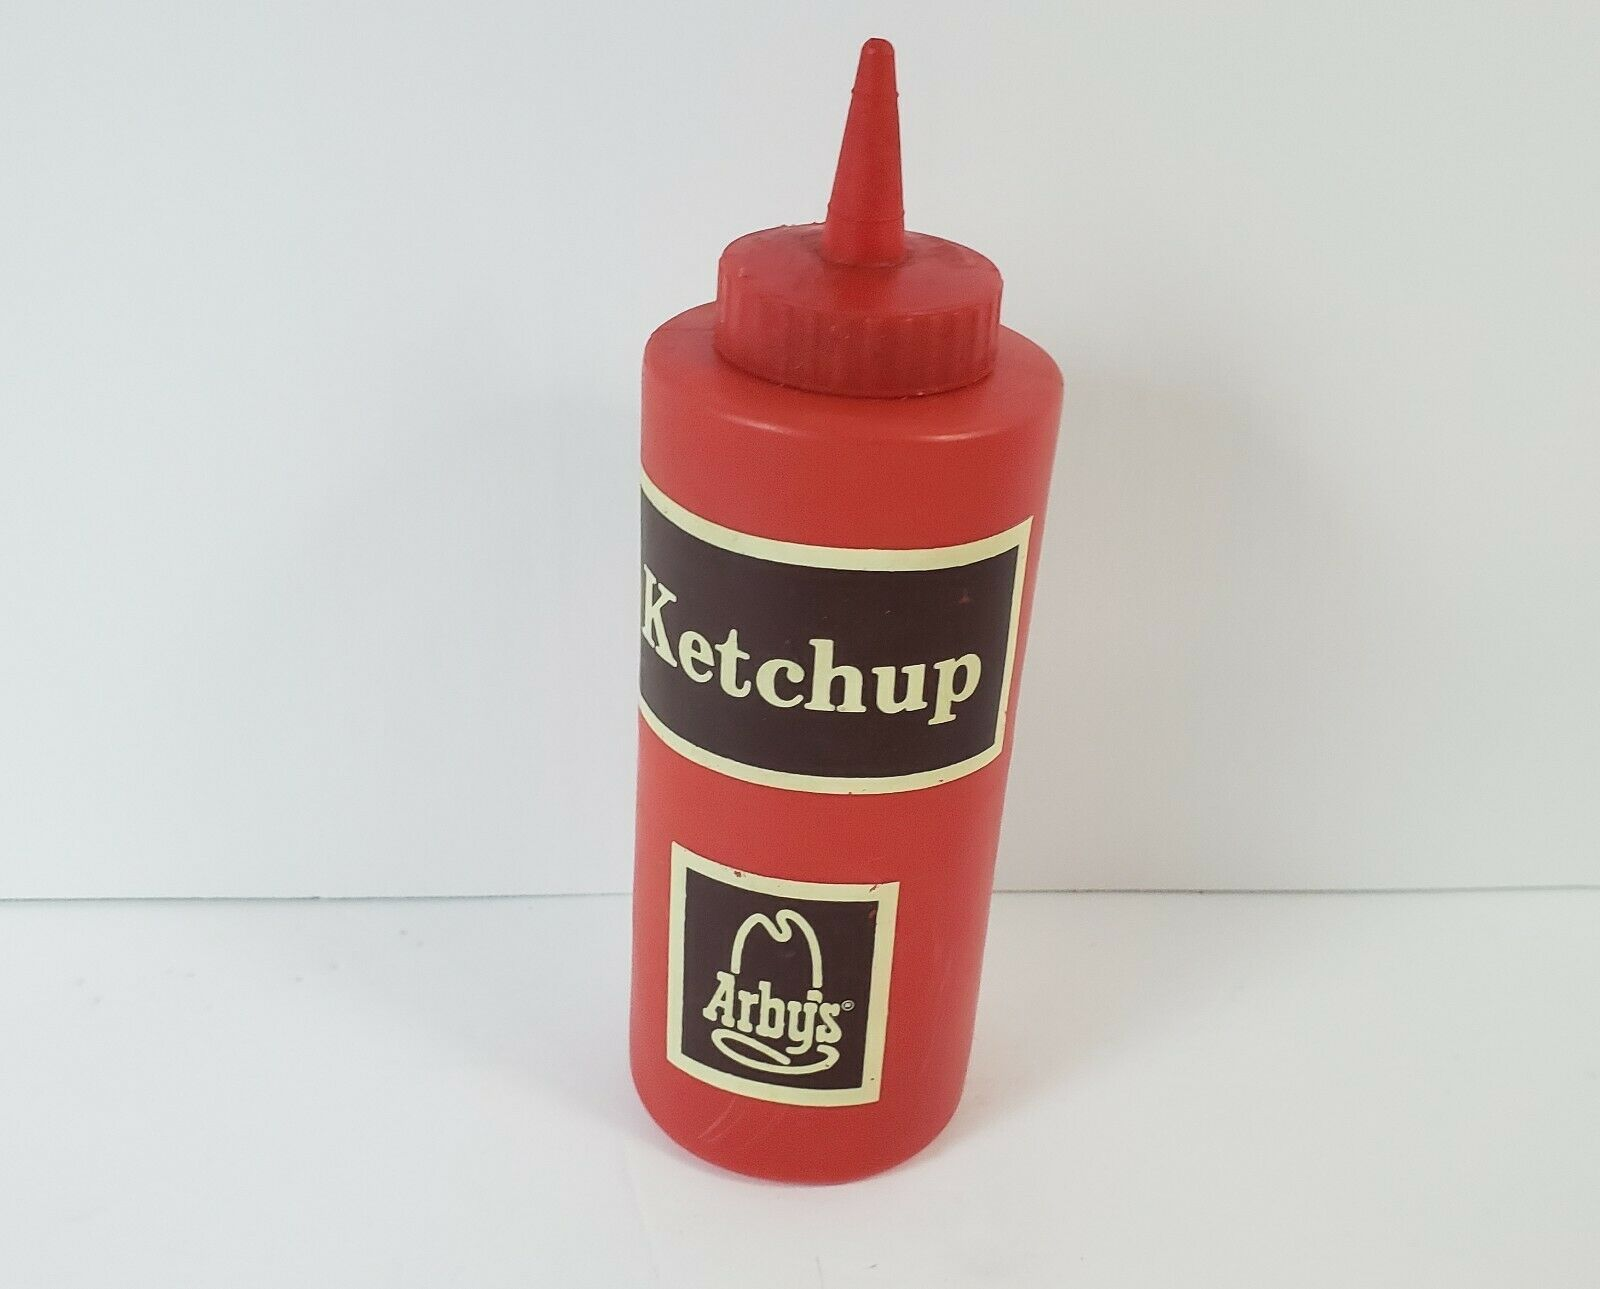 "Vintage Arby's Ketchup Squeeze Bottle - 1970's - Advertising - 7.5"" Tall image 3"